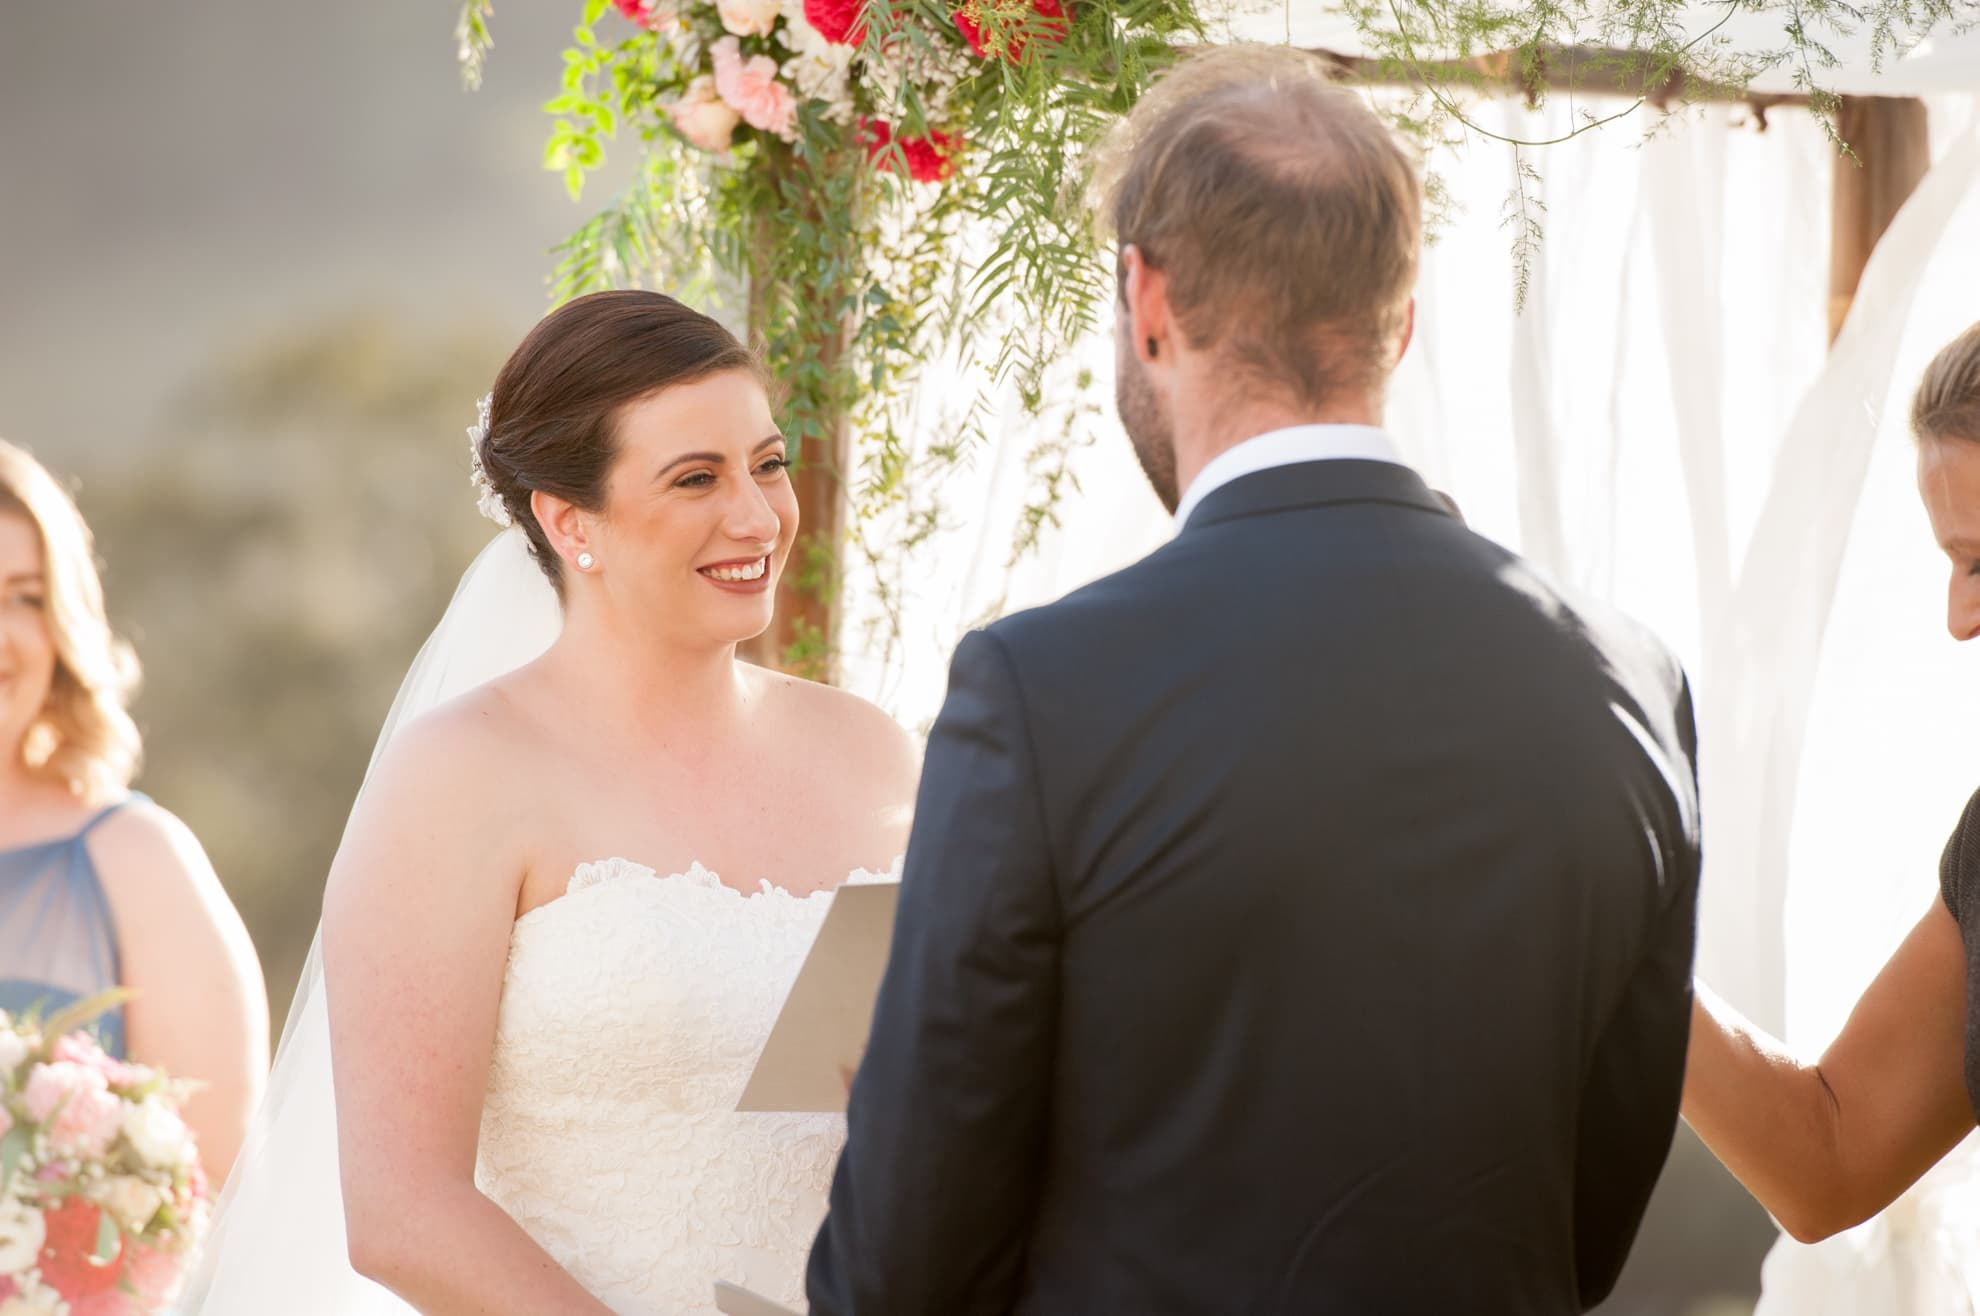 bride-smiling-at-her-groom-during-the-ceremony